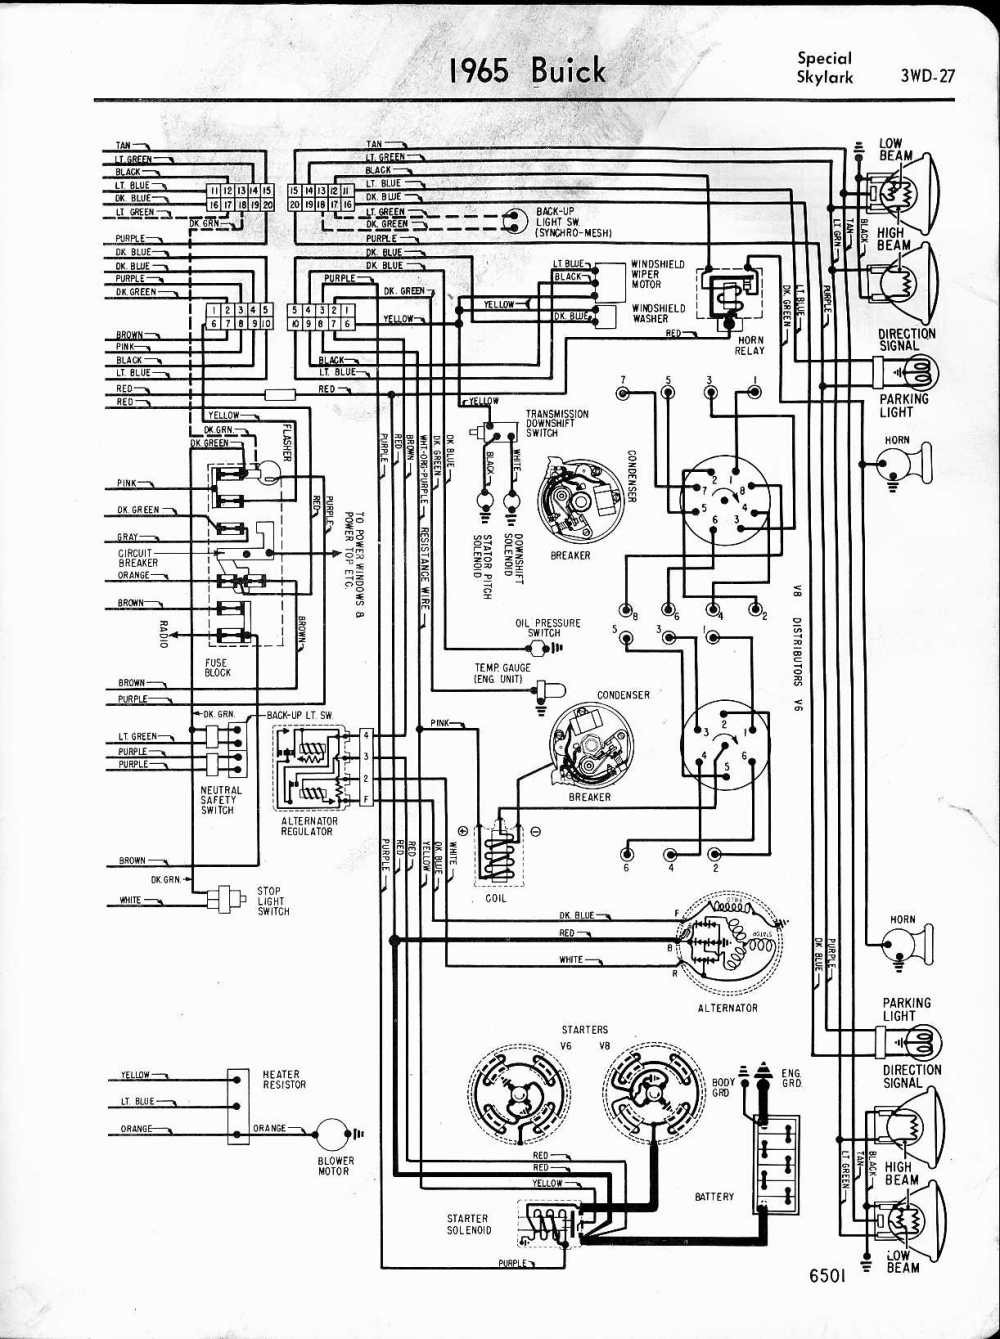 medium resolution of buick wiring diagrams 1957 1965 1988 buick lesabre wiring diagram 1965 special skylark right